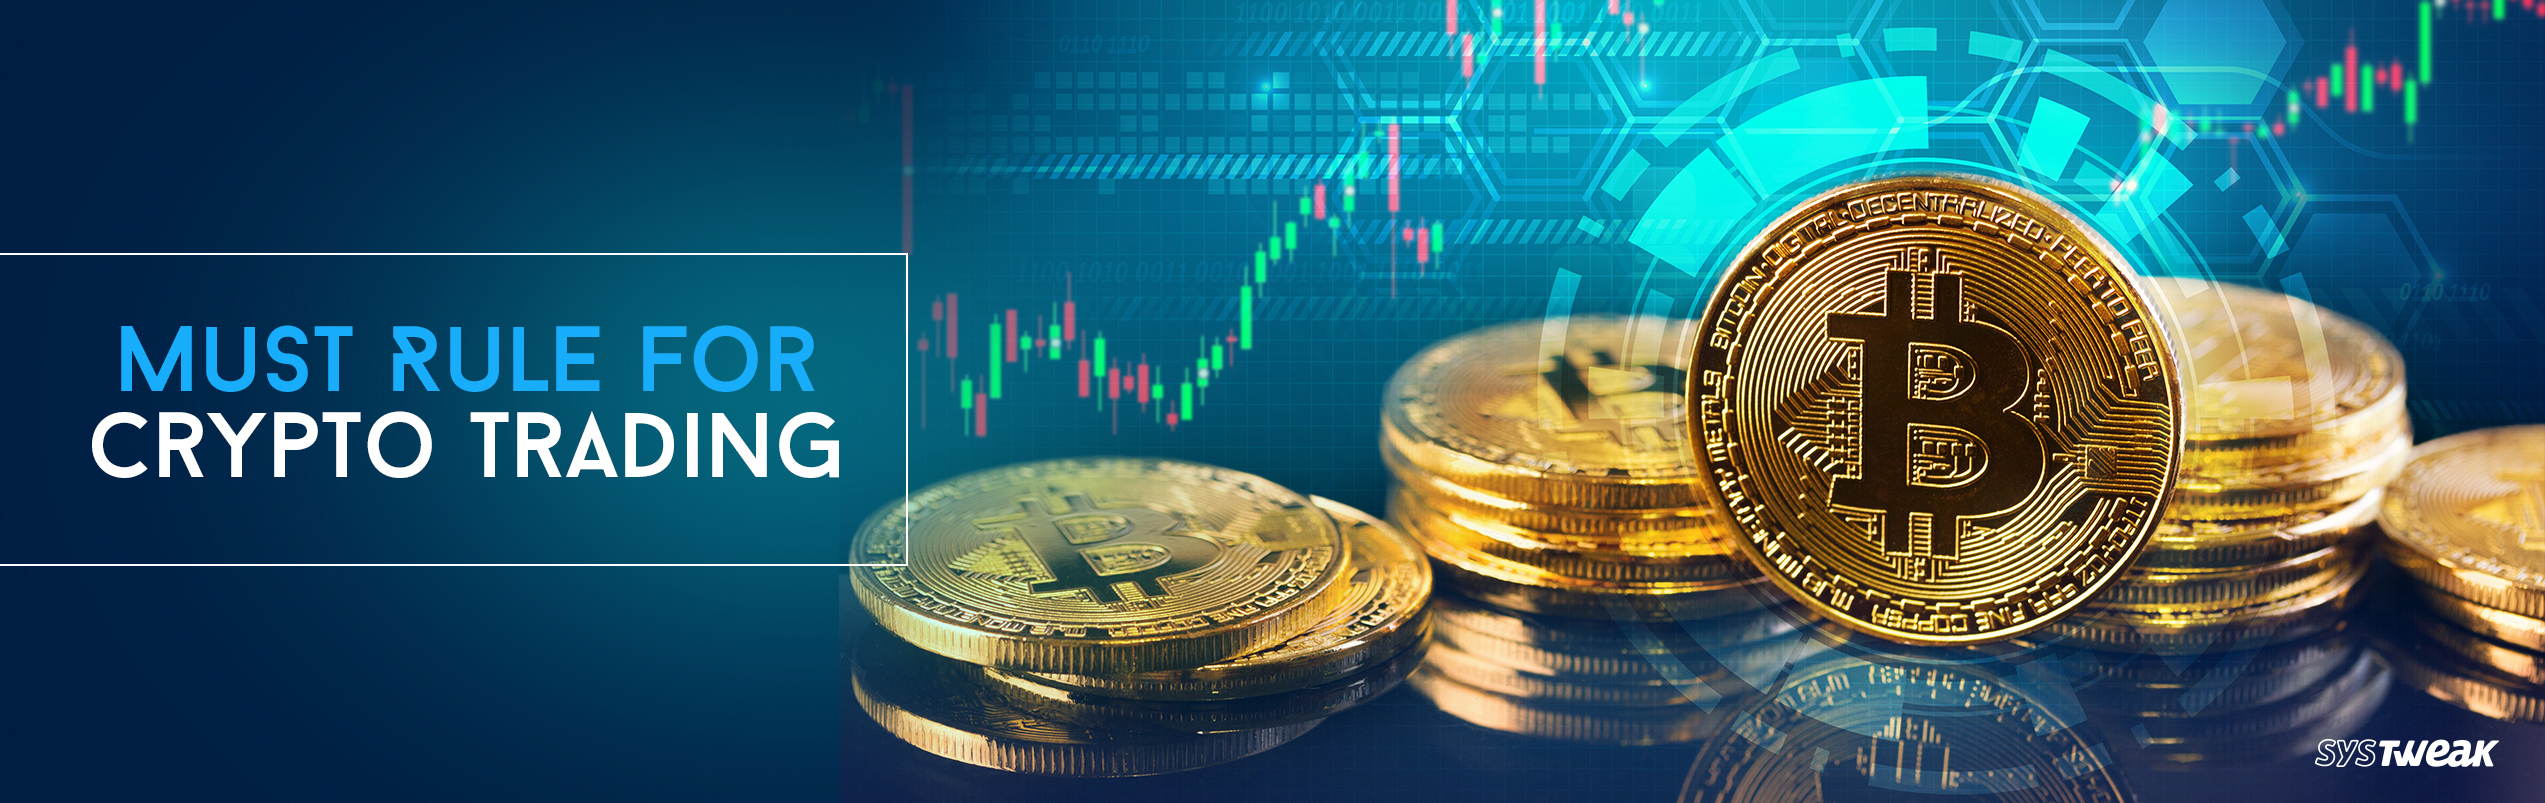 11 Golden Rules Of Crypto Trading